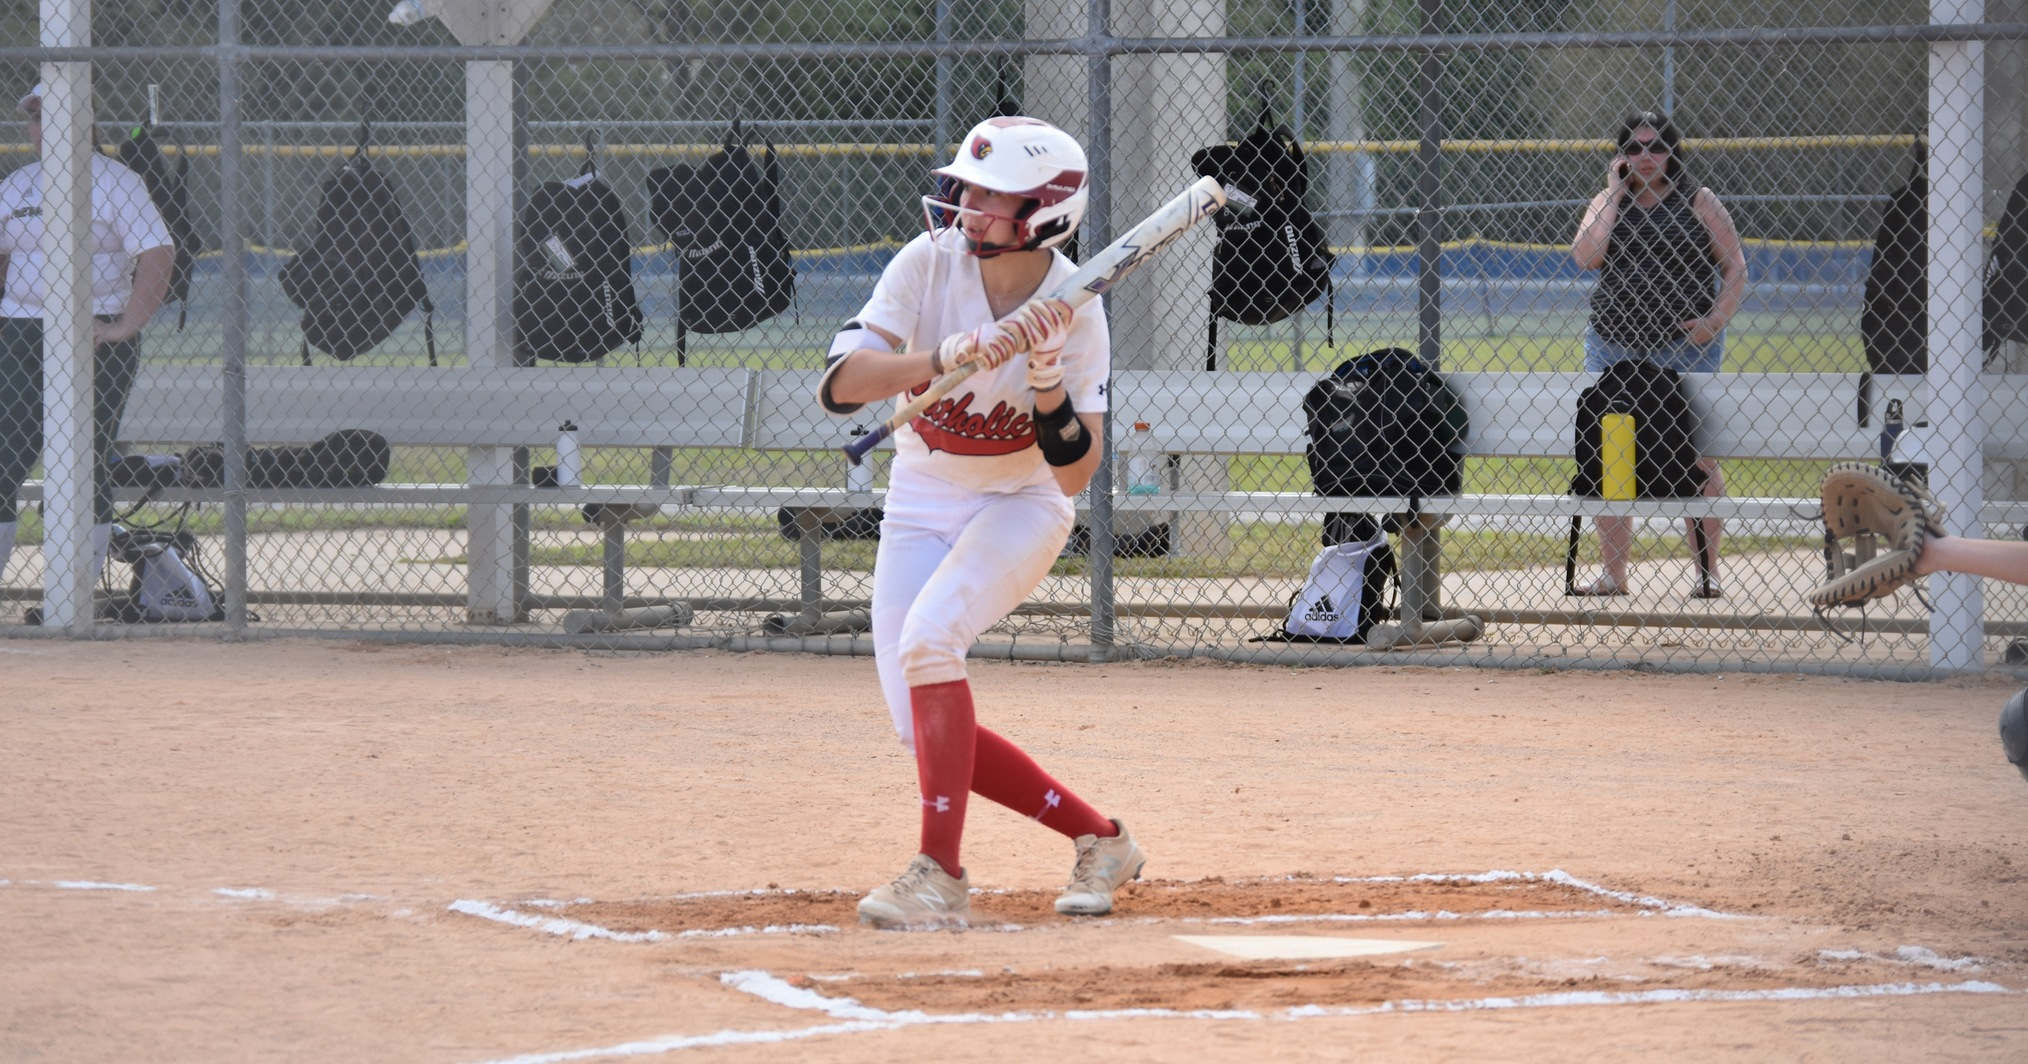 Bruder Totals Four Hits, Cardinals Swept by Immaculata